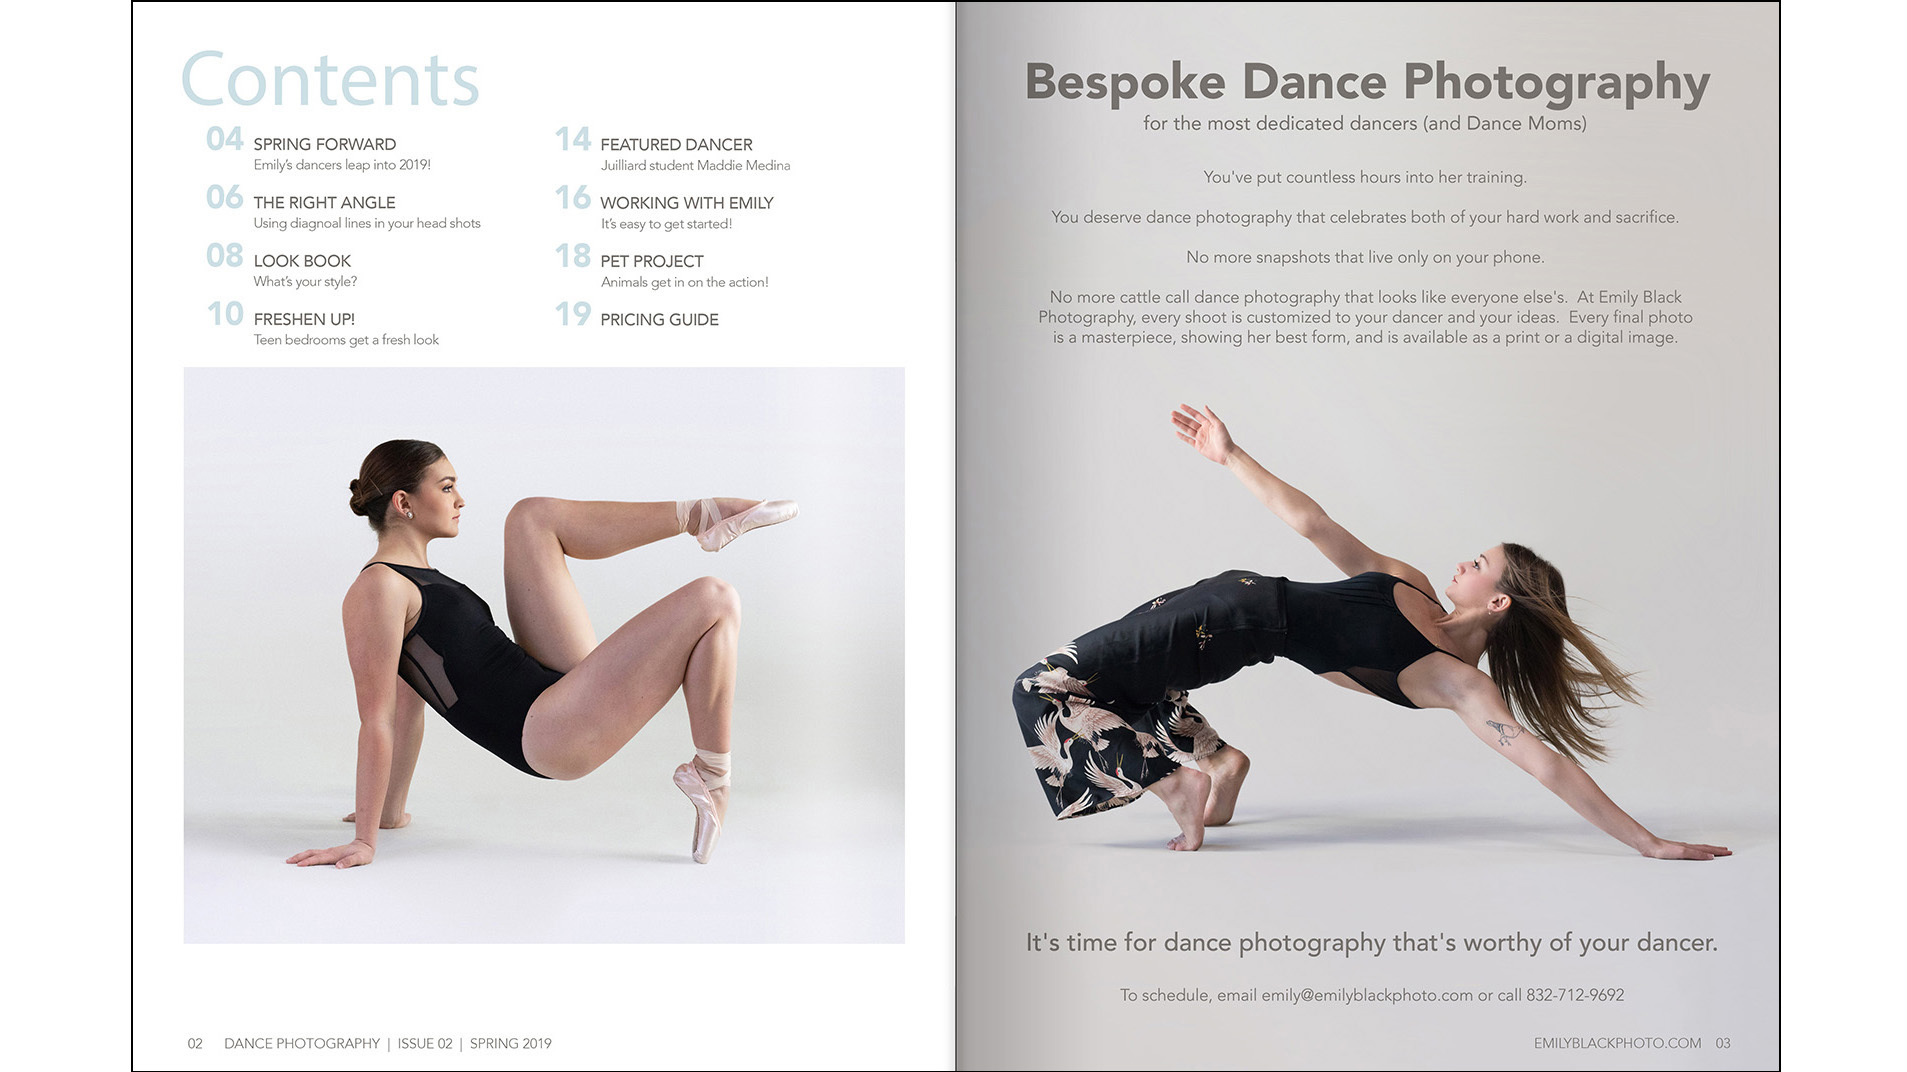 Table of Contents - I chose similar images of dancers to create tension and symmetry to open the magazine.